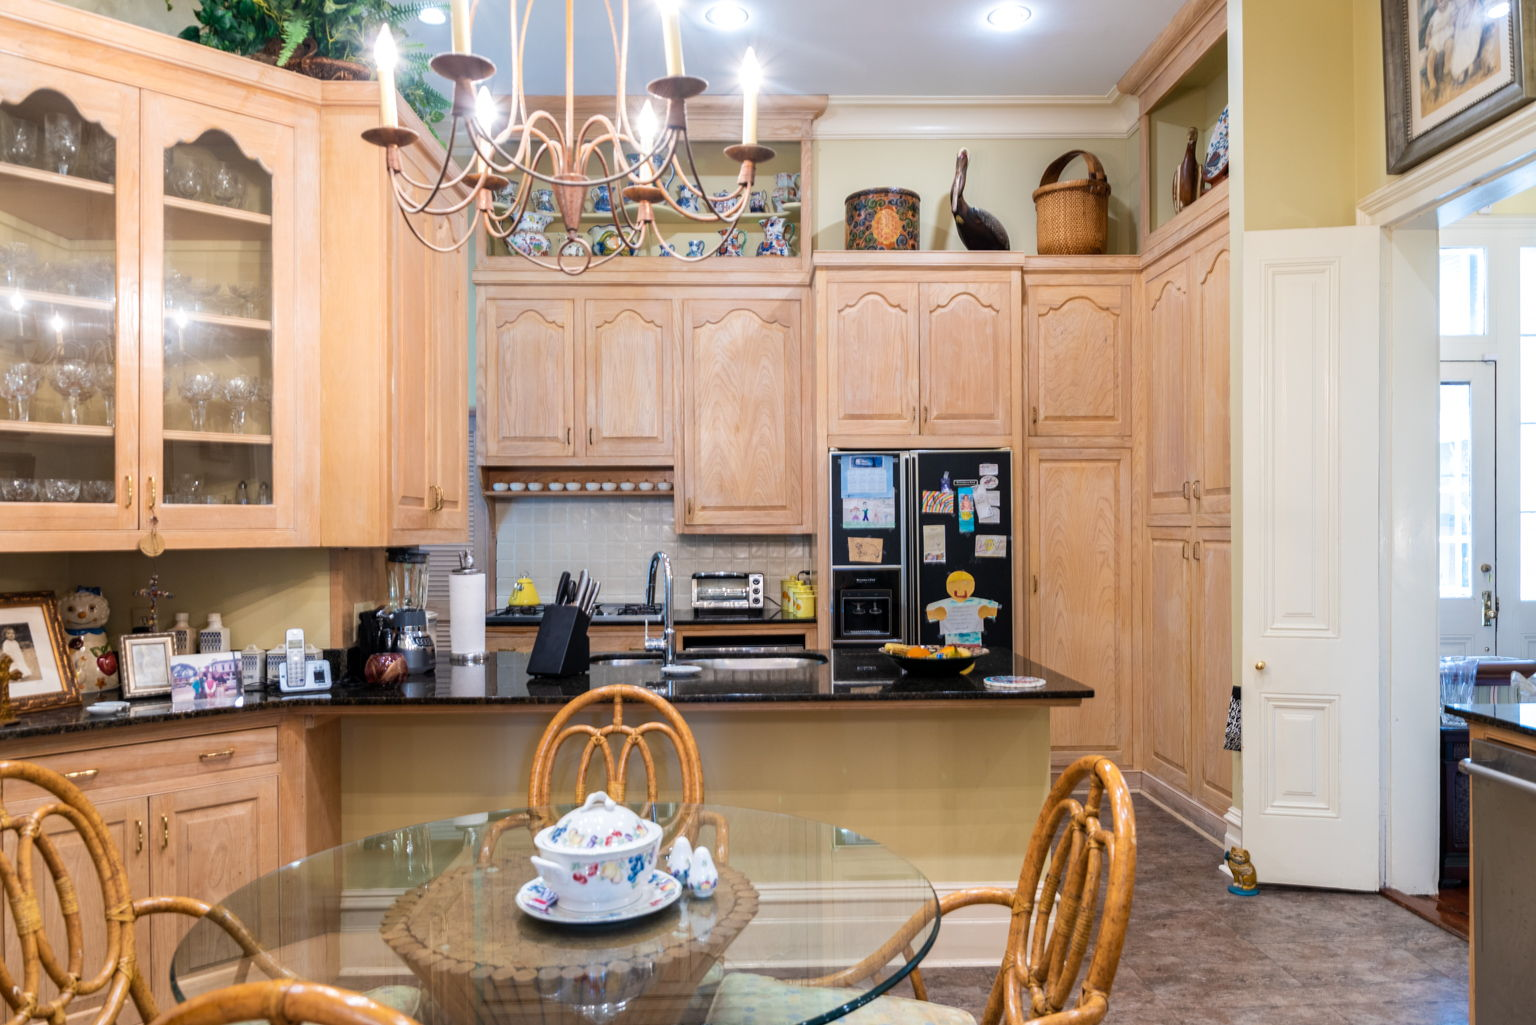 With a breakfast nook, bar, and great storage.